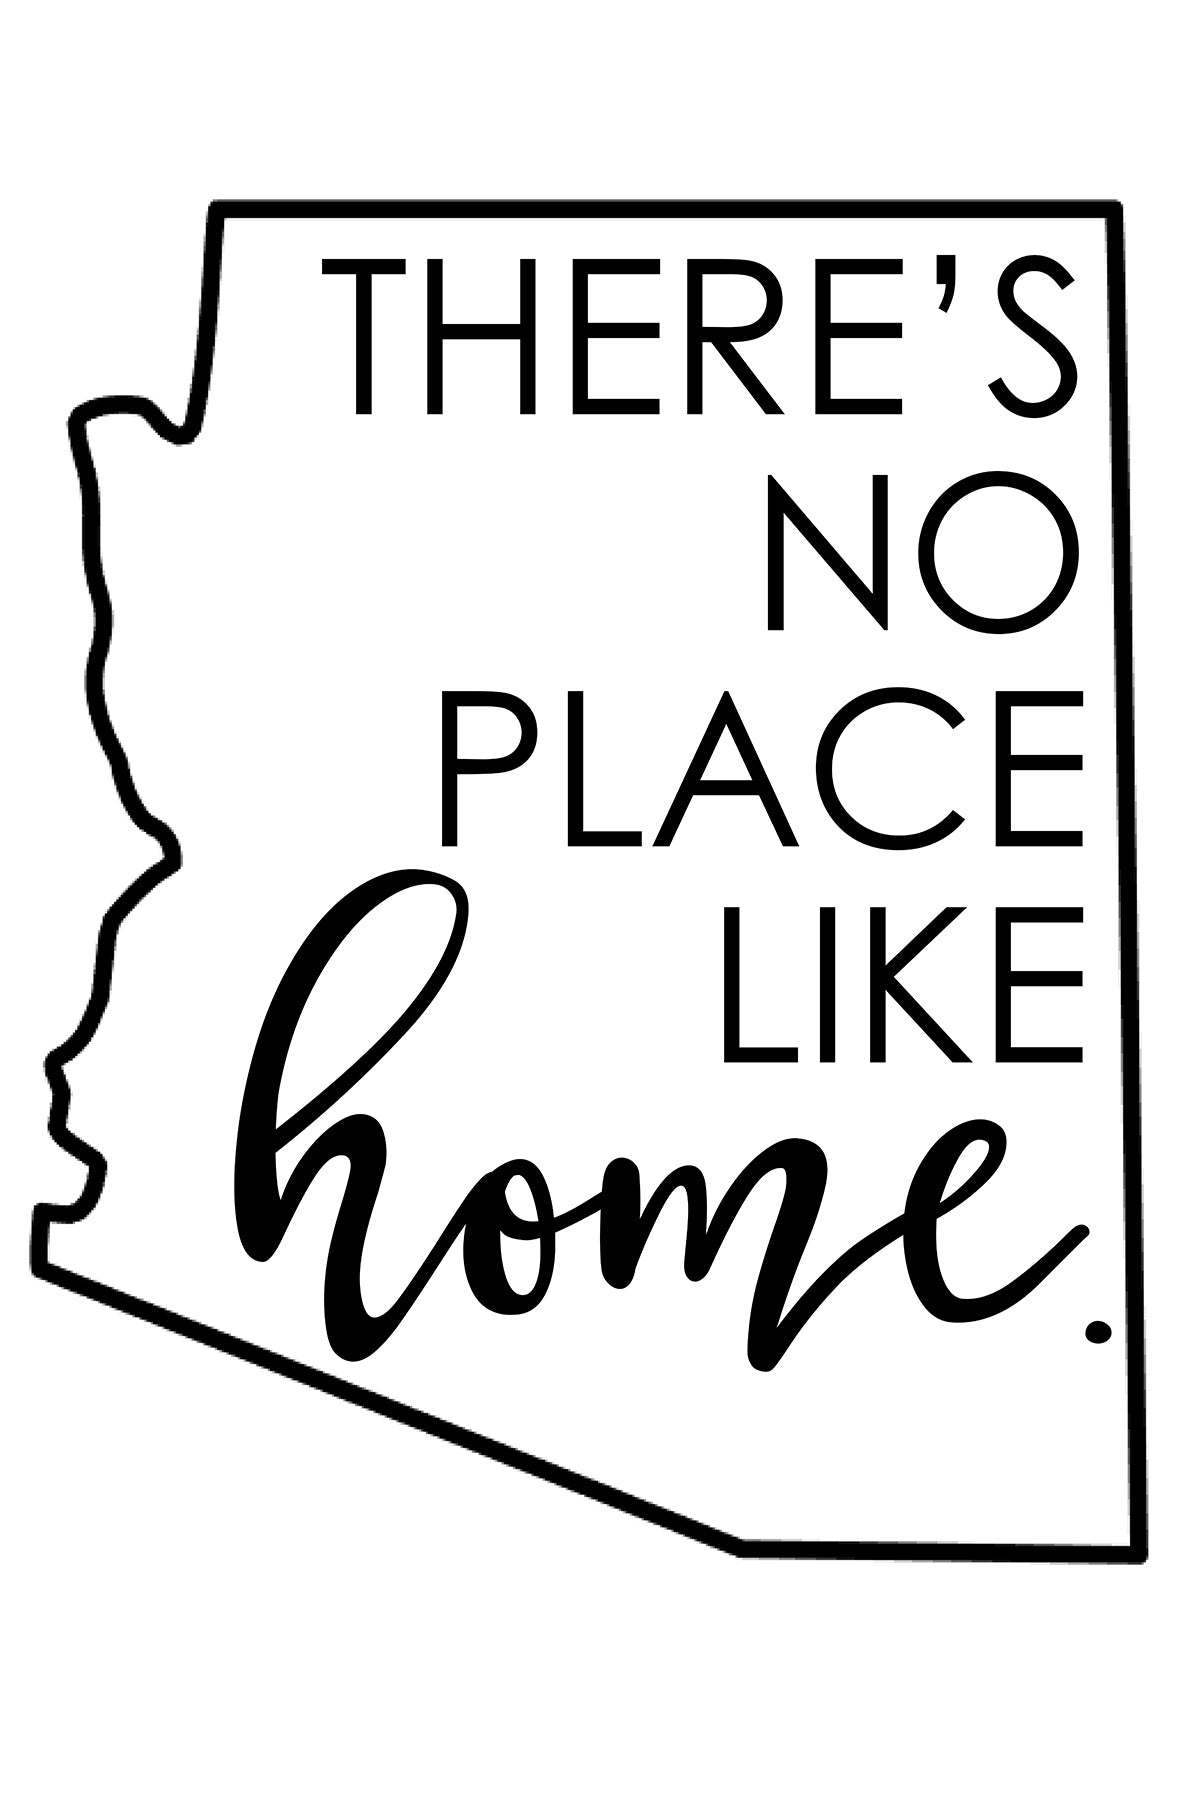 There's No Place Like Home - Arizona Download